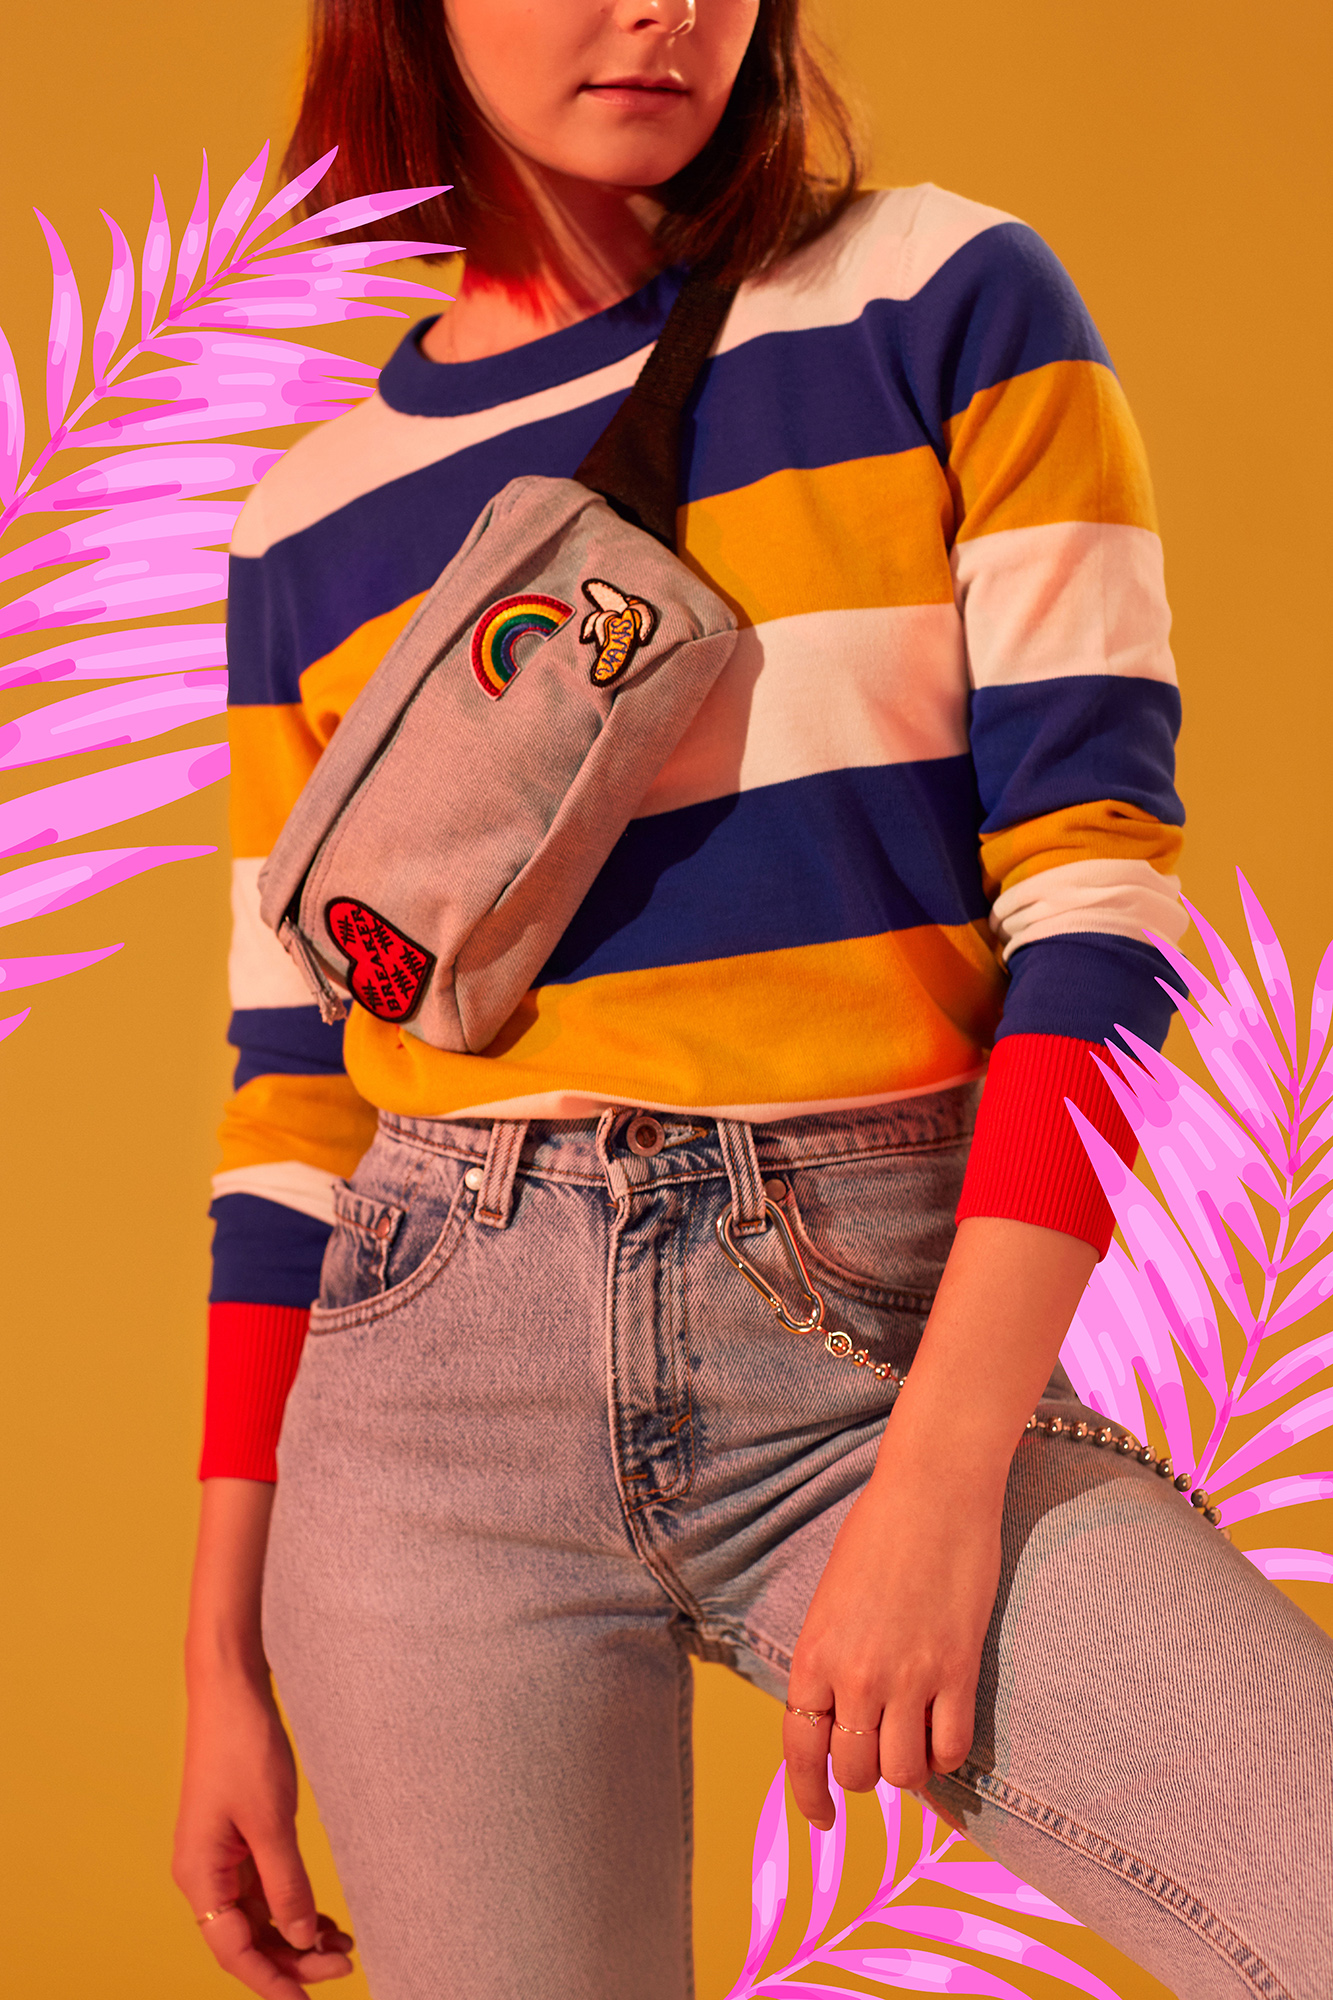 RNY_Sudit_Anna_Fanny_Packs_Are_Fashion's_Summer_Obsession_Slides_051017-05 copy.jpg